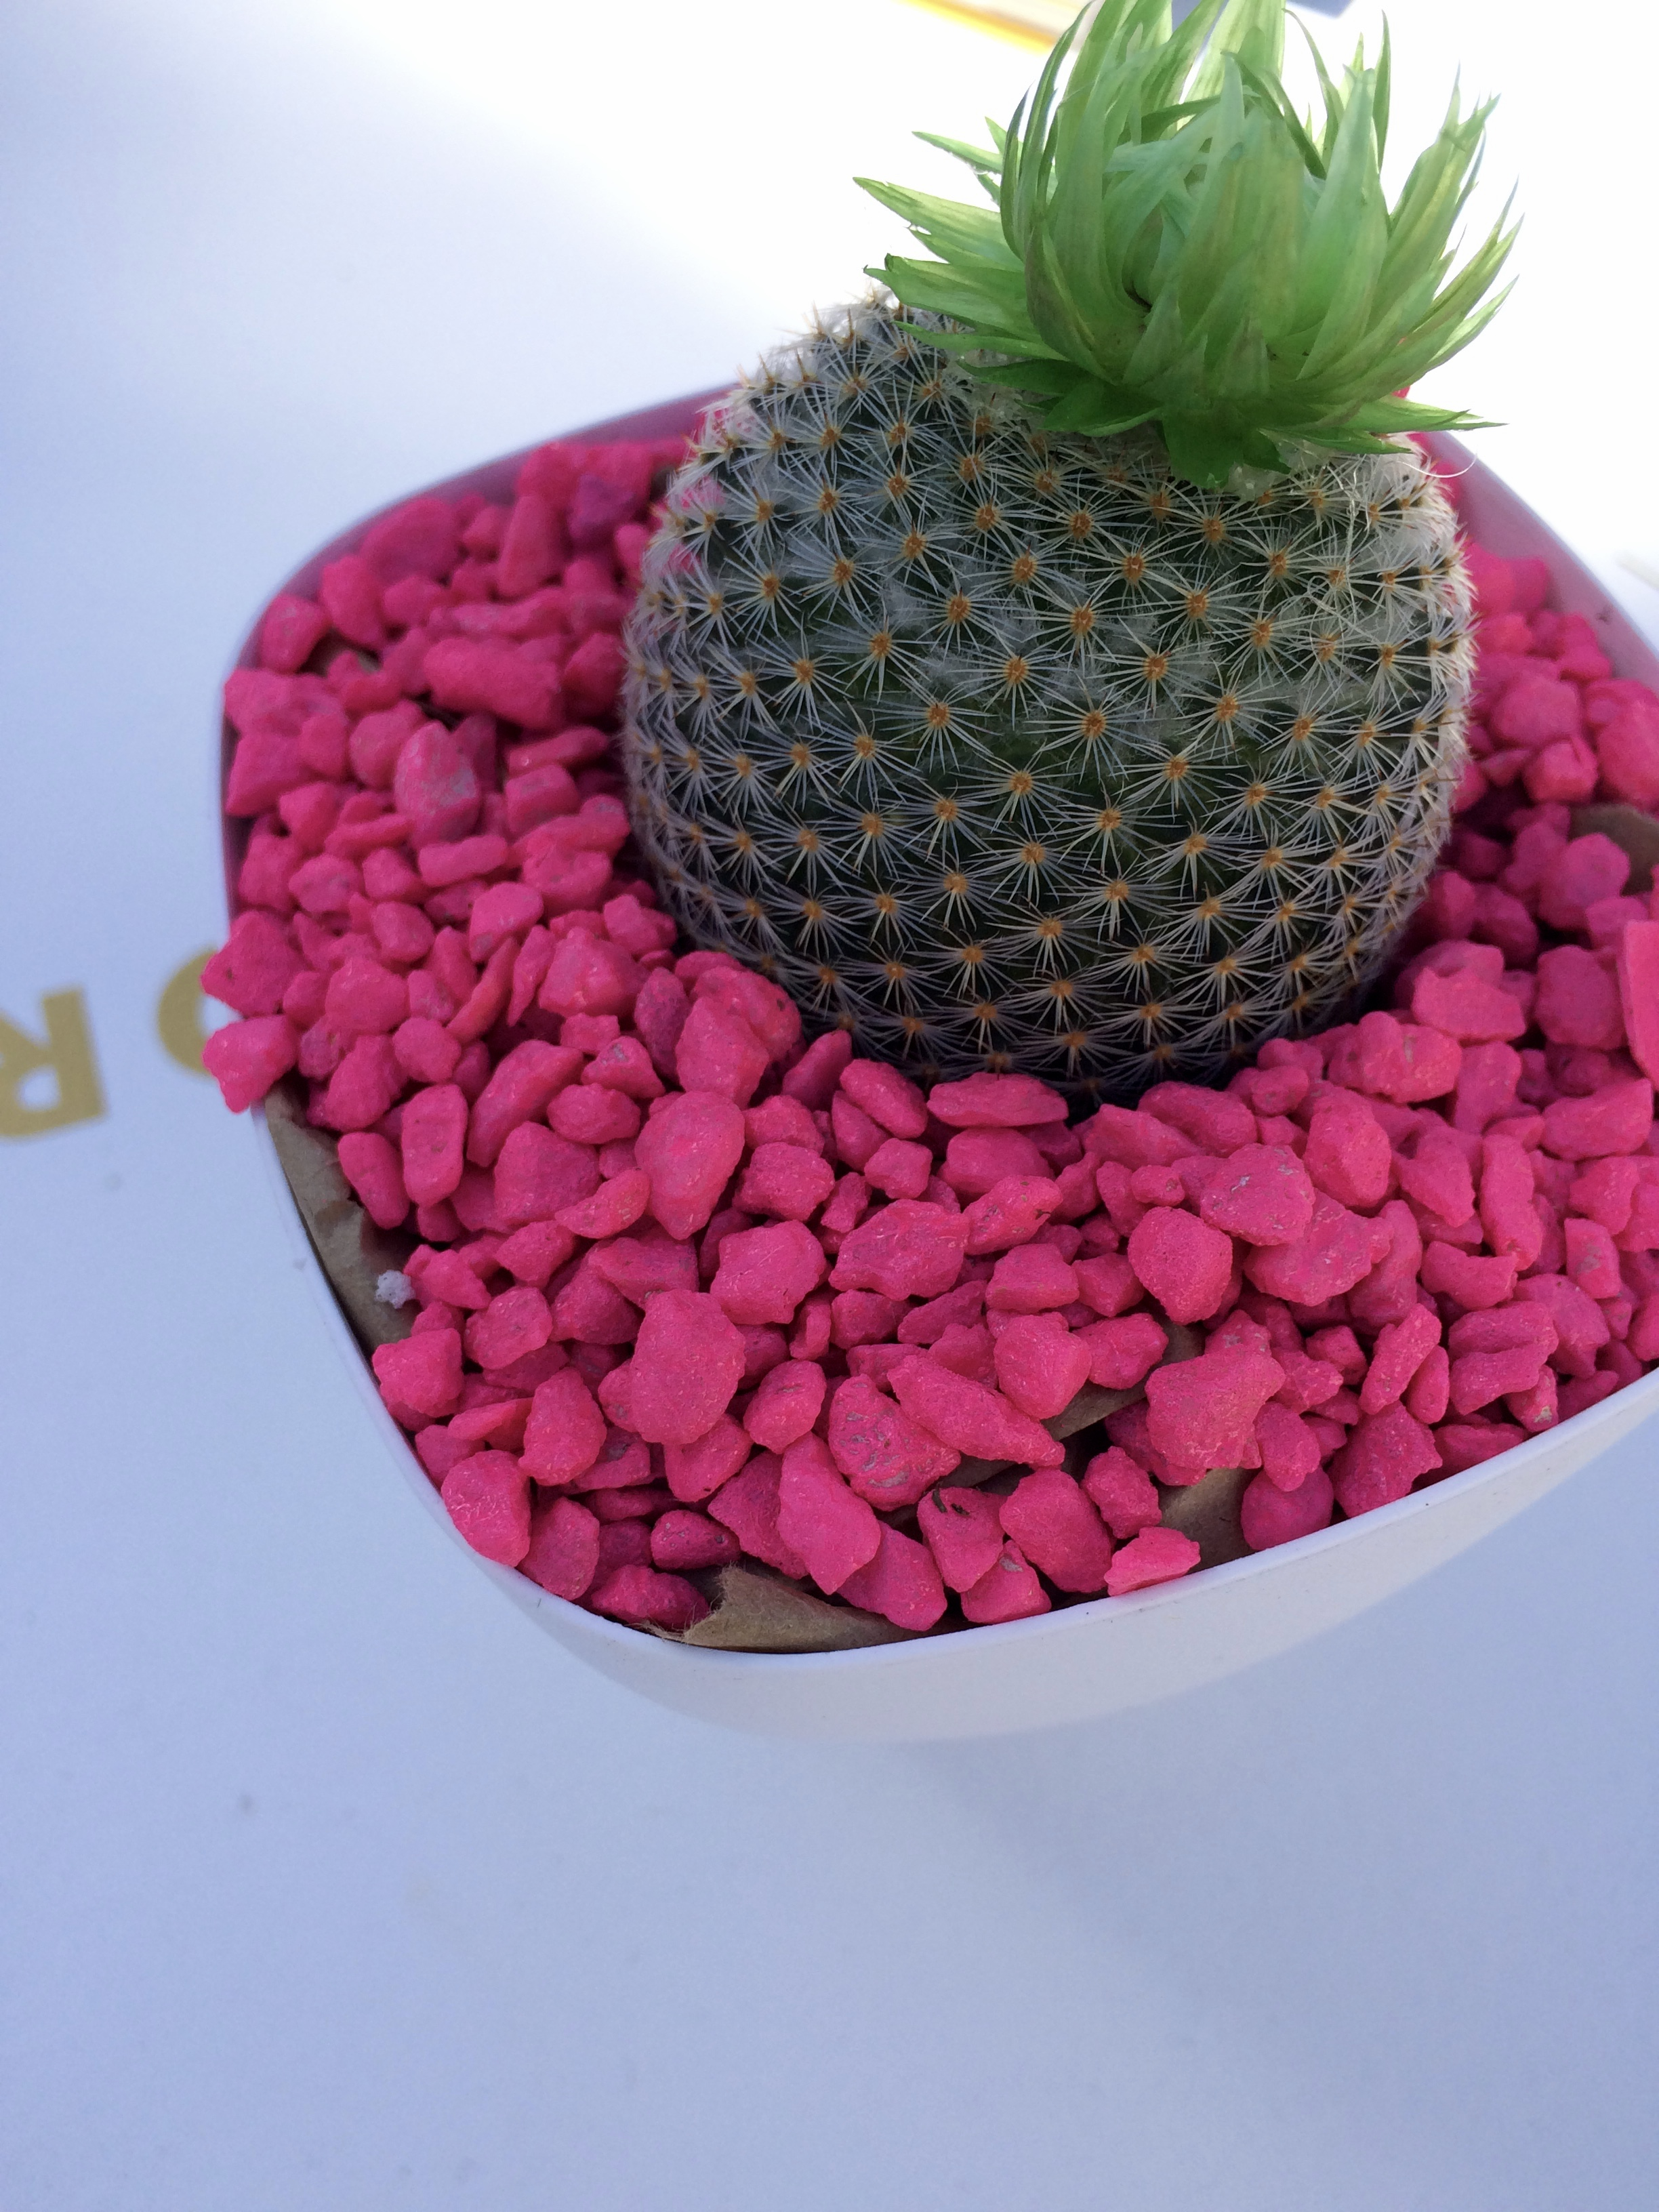 Are these not the cutest little cacti?